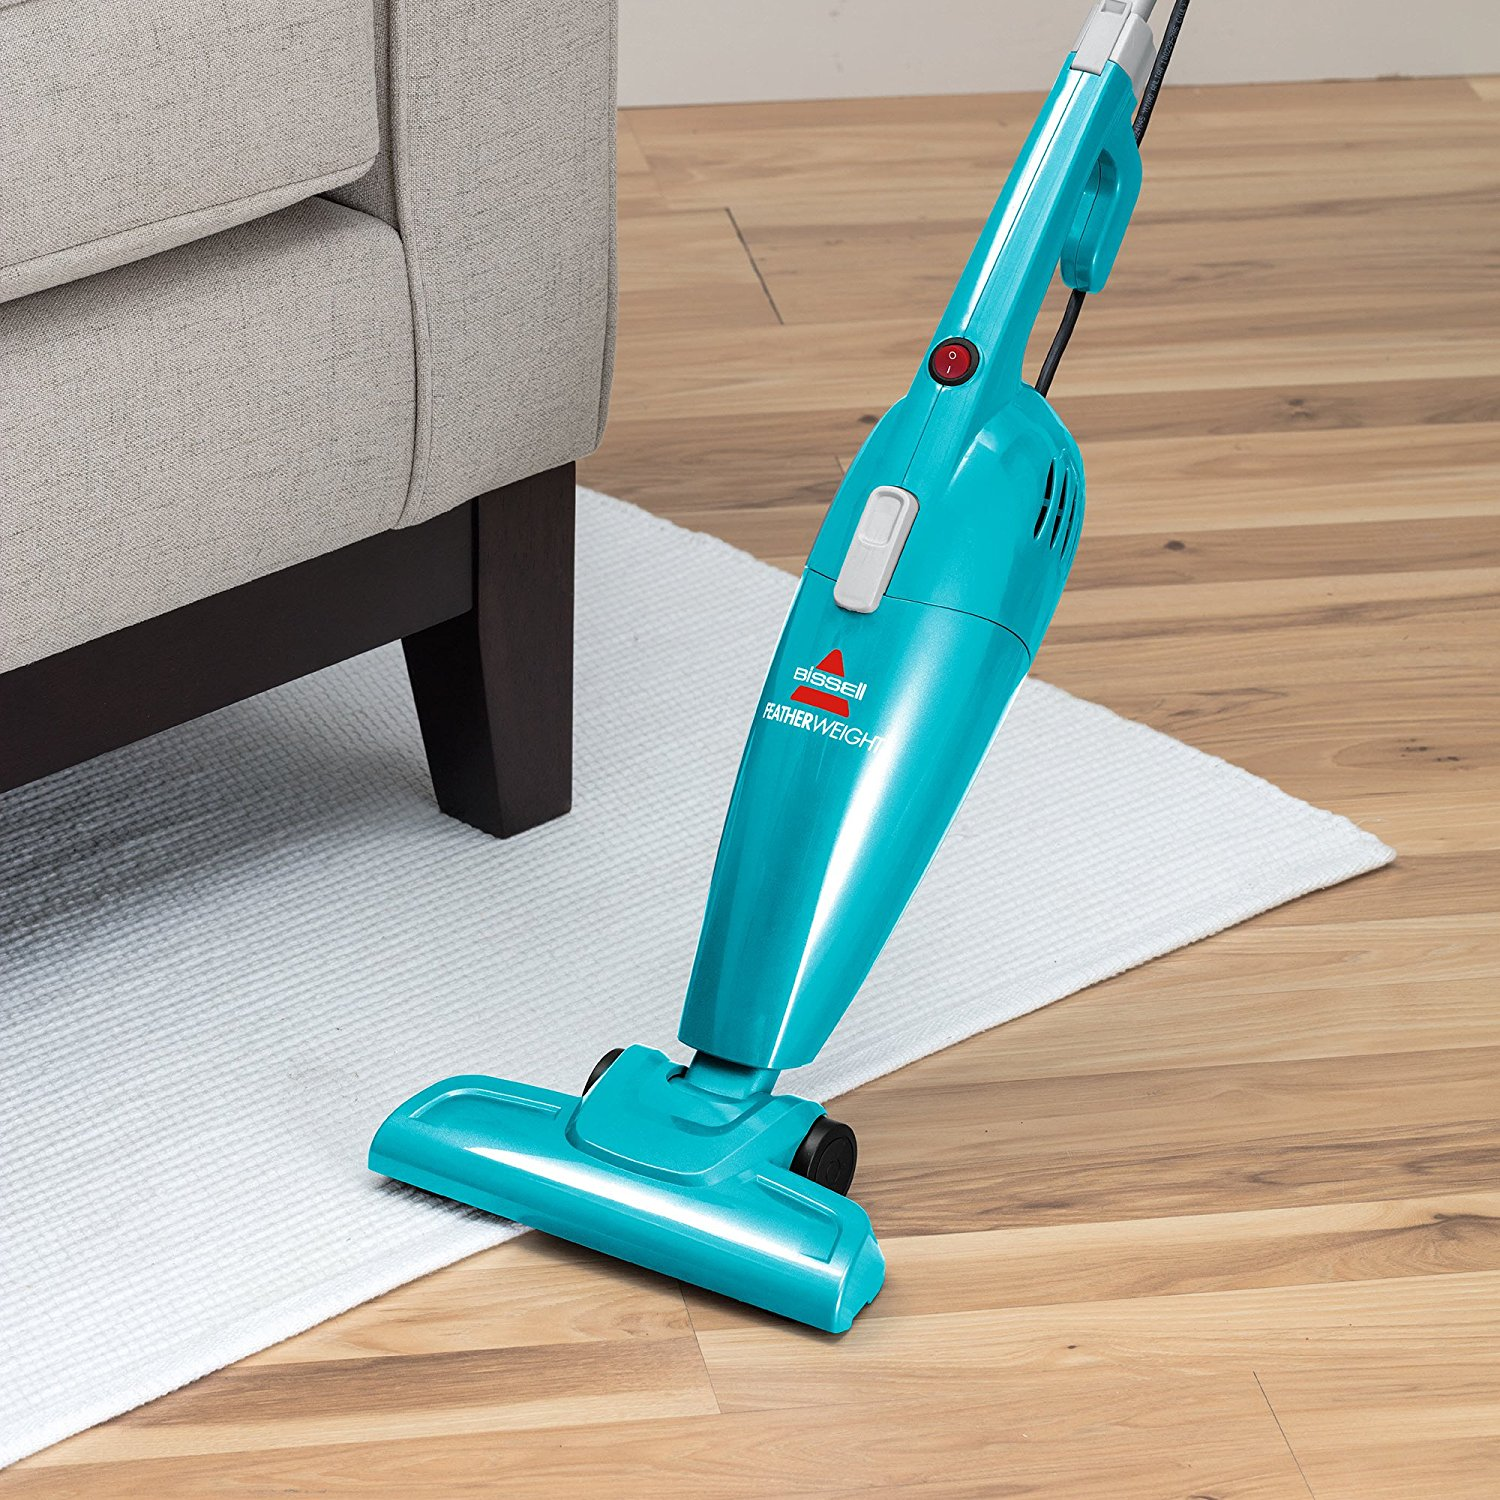 Professional Review On The Bissell Featherweight Electric Broom